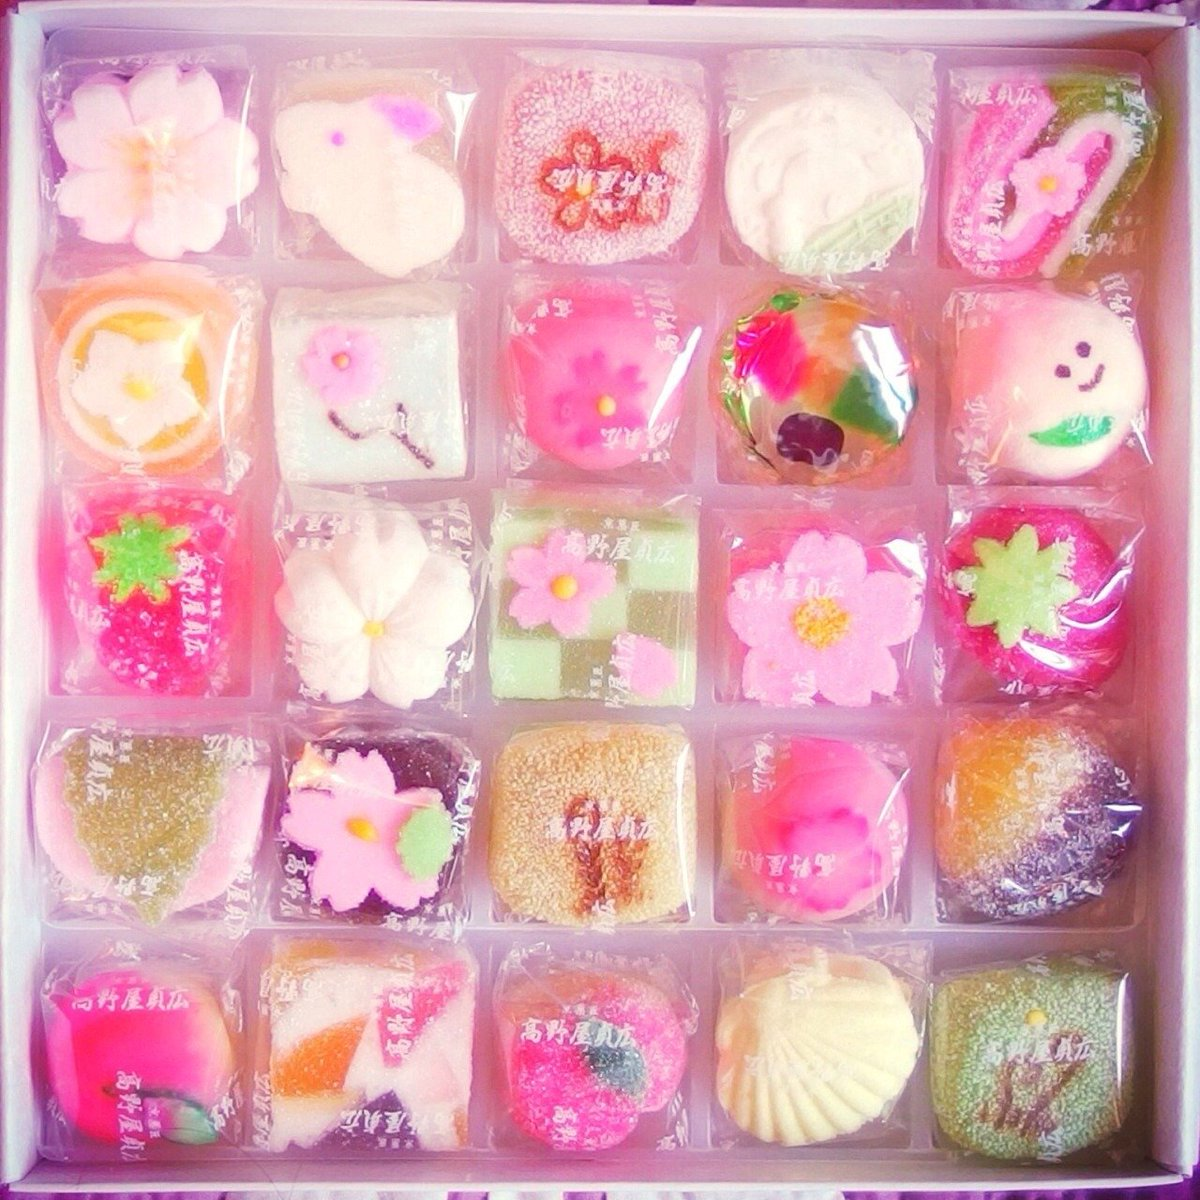 Kyoto sweets